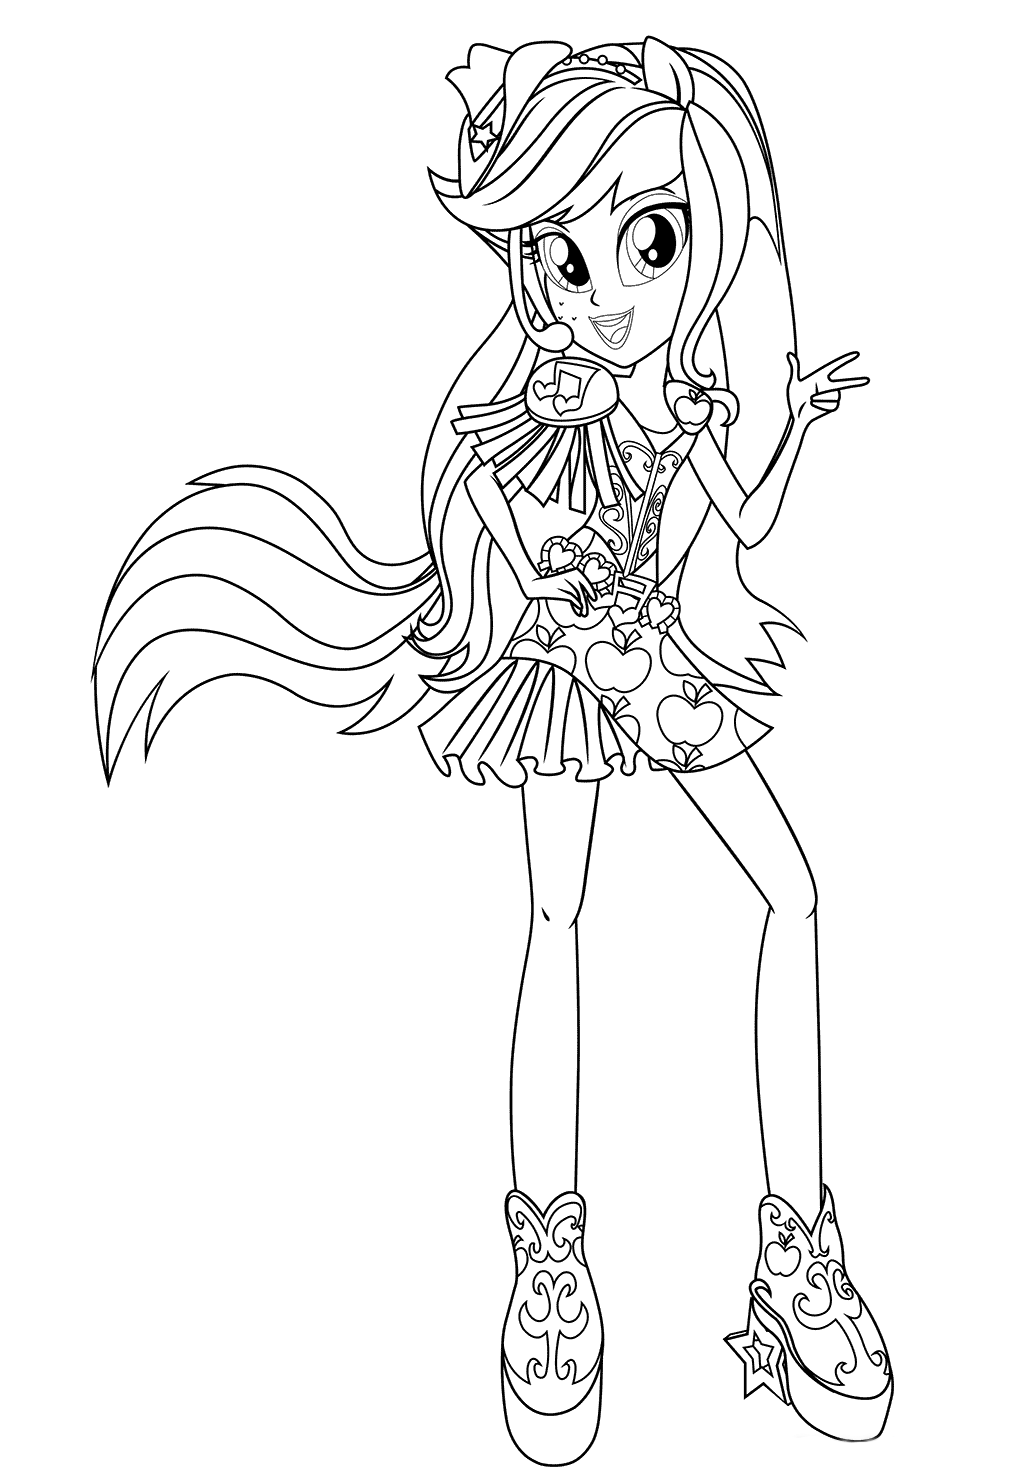 Applejack Coloring Pages Best Coloring Pages For Kids My Little Pony Coloring Cute Coloring Pages Bird Coloring Pages